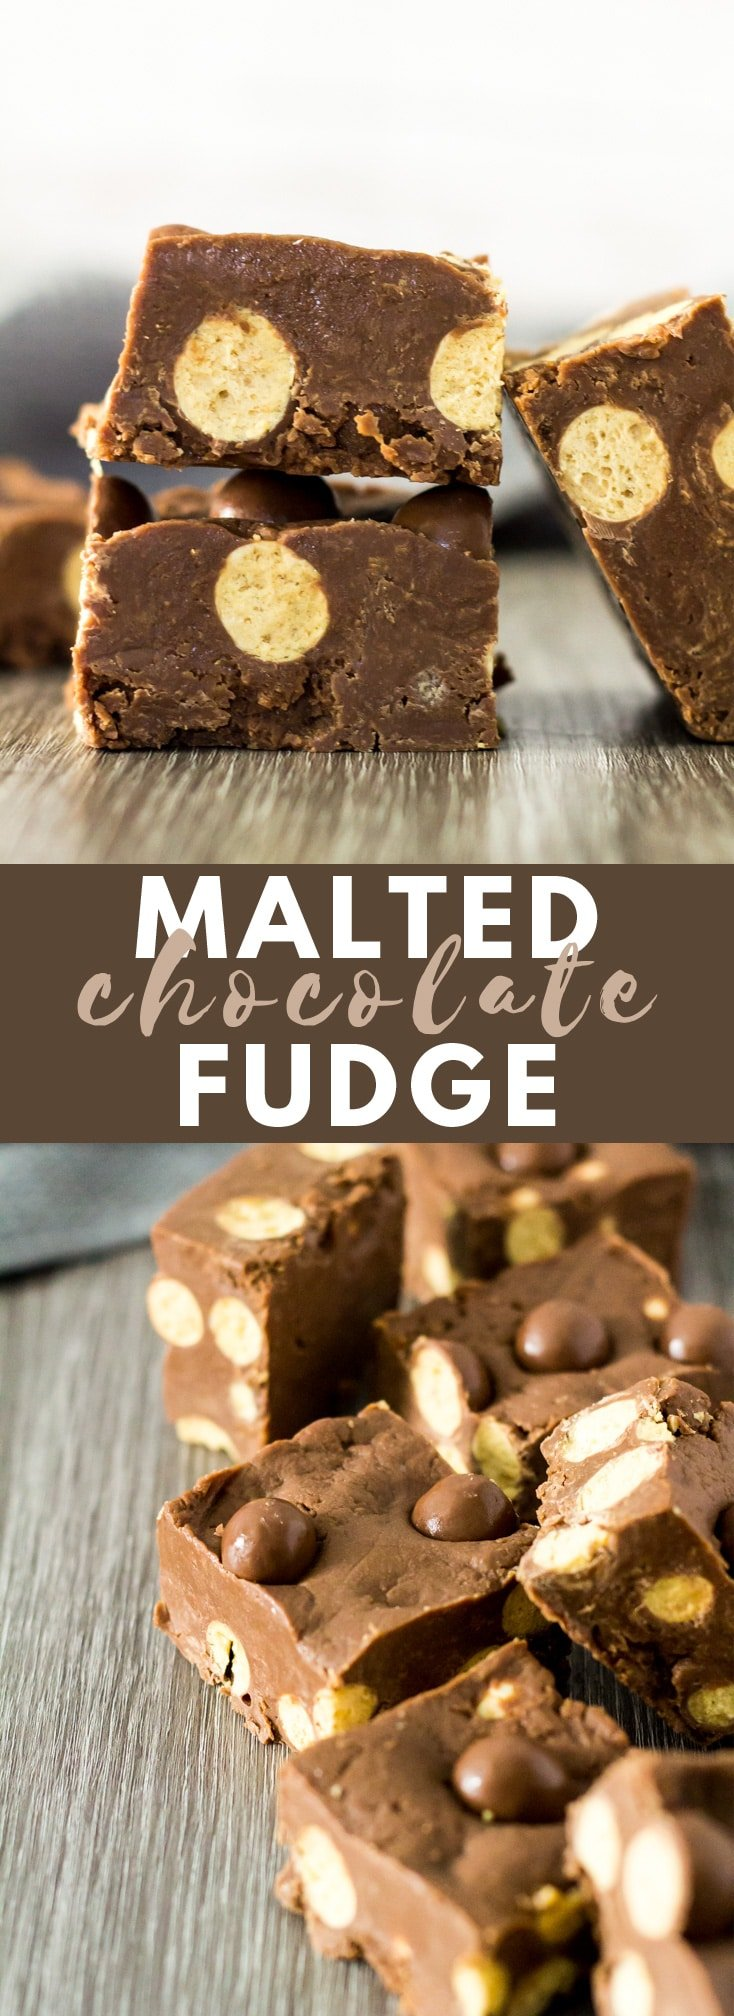 Malted Chocolate Fudge